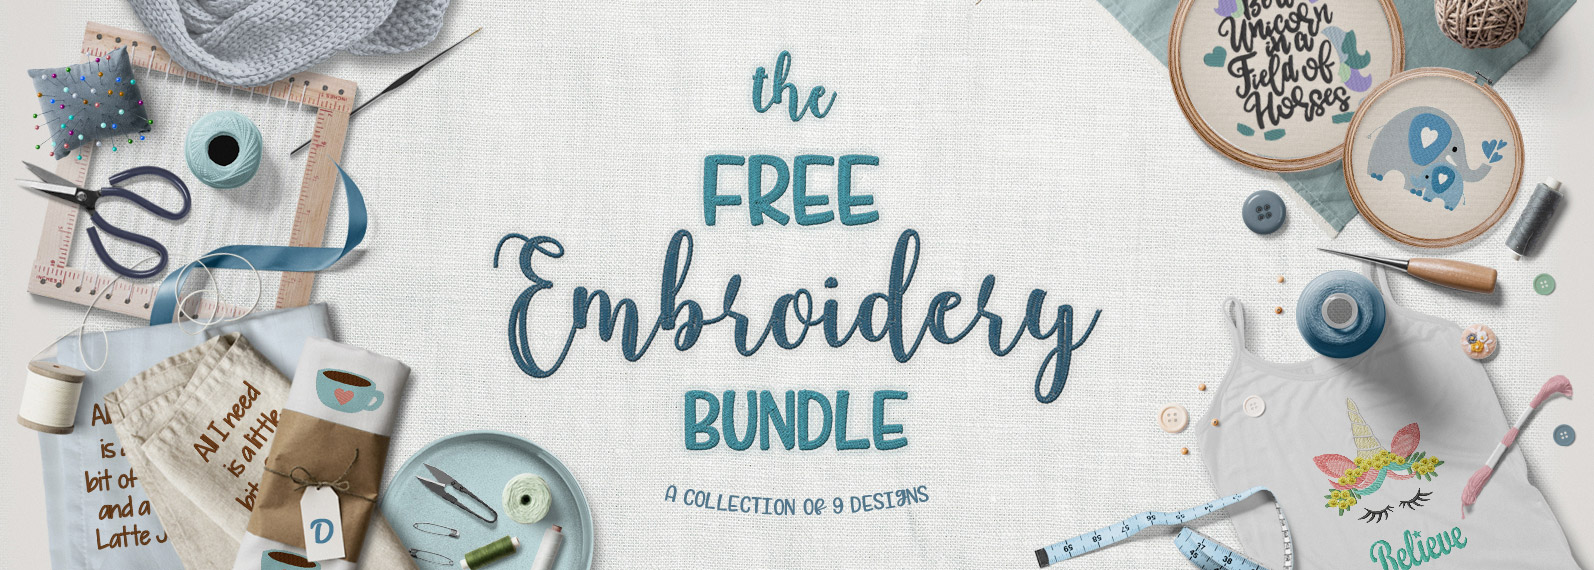 The Free Embroidery Bundle Cover